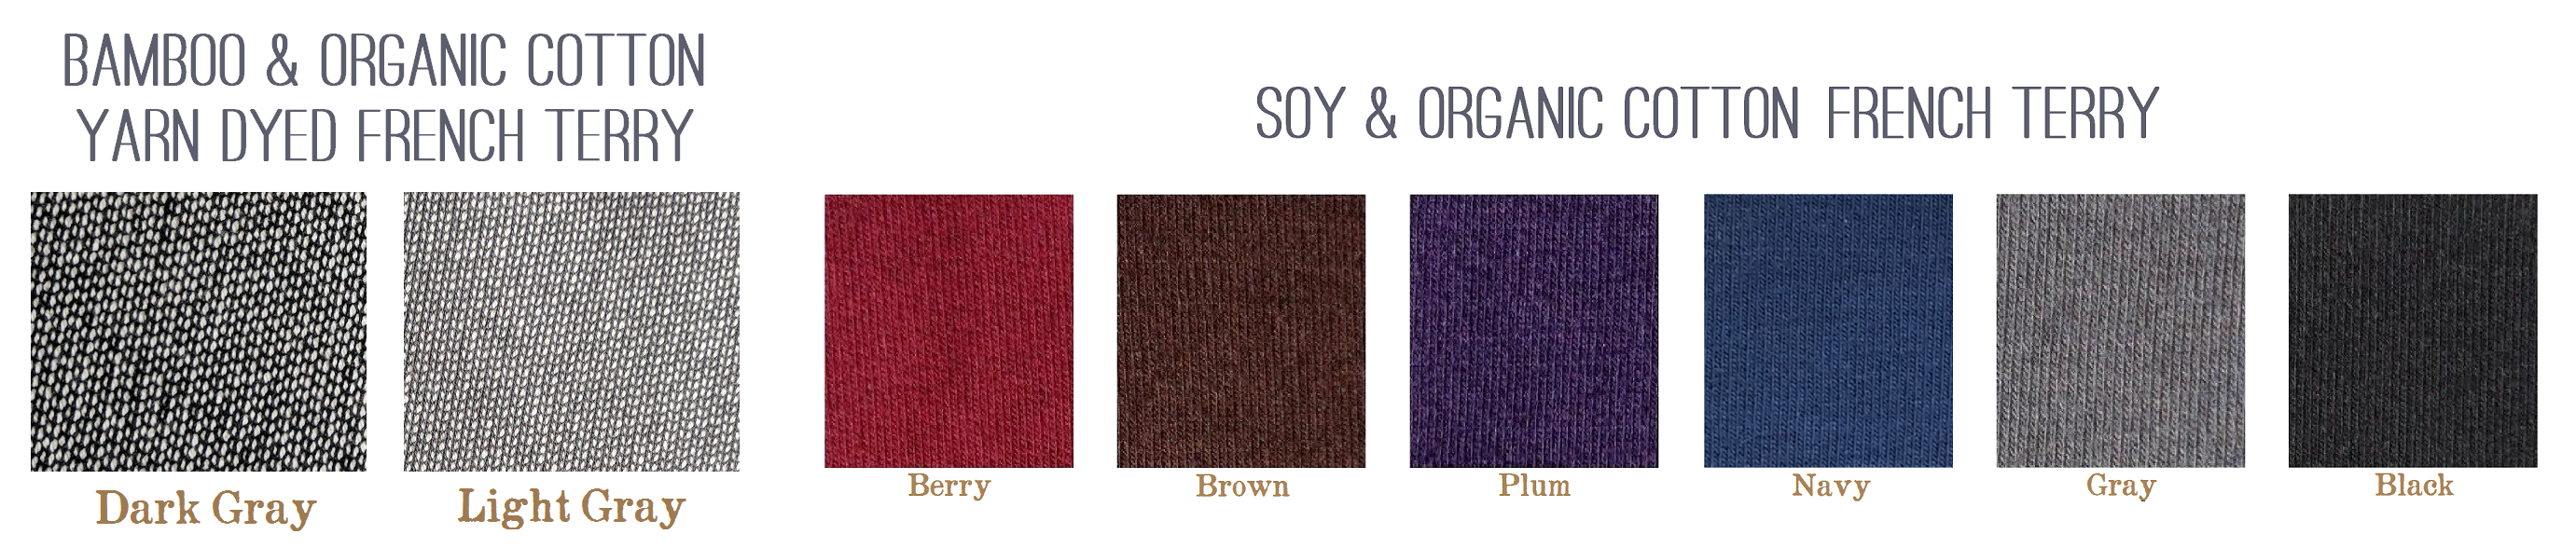 French Terry comes in Yarn Dyed Dark Gray and Light Gray, and Solid Berry, Brown, Plum, Navy, Gray, and Black